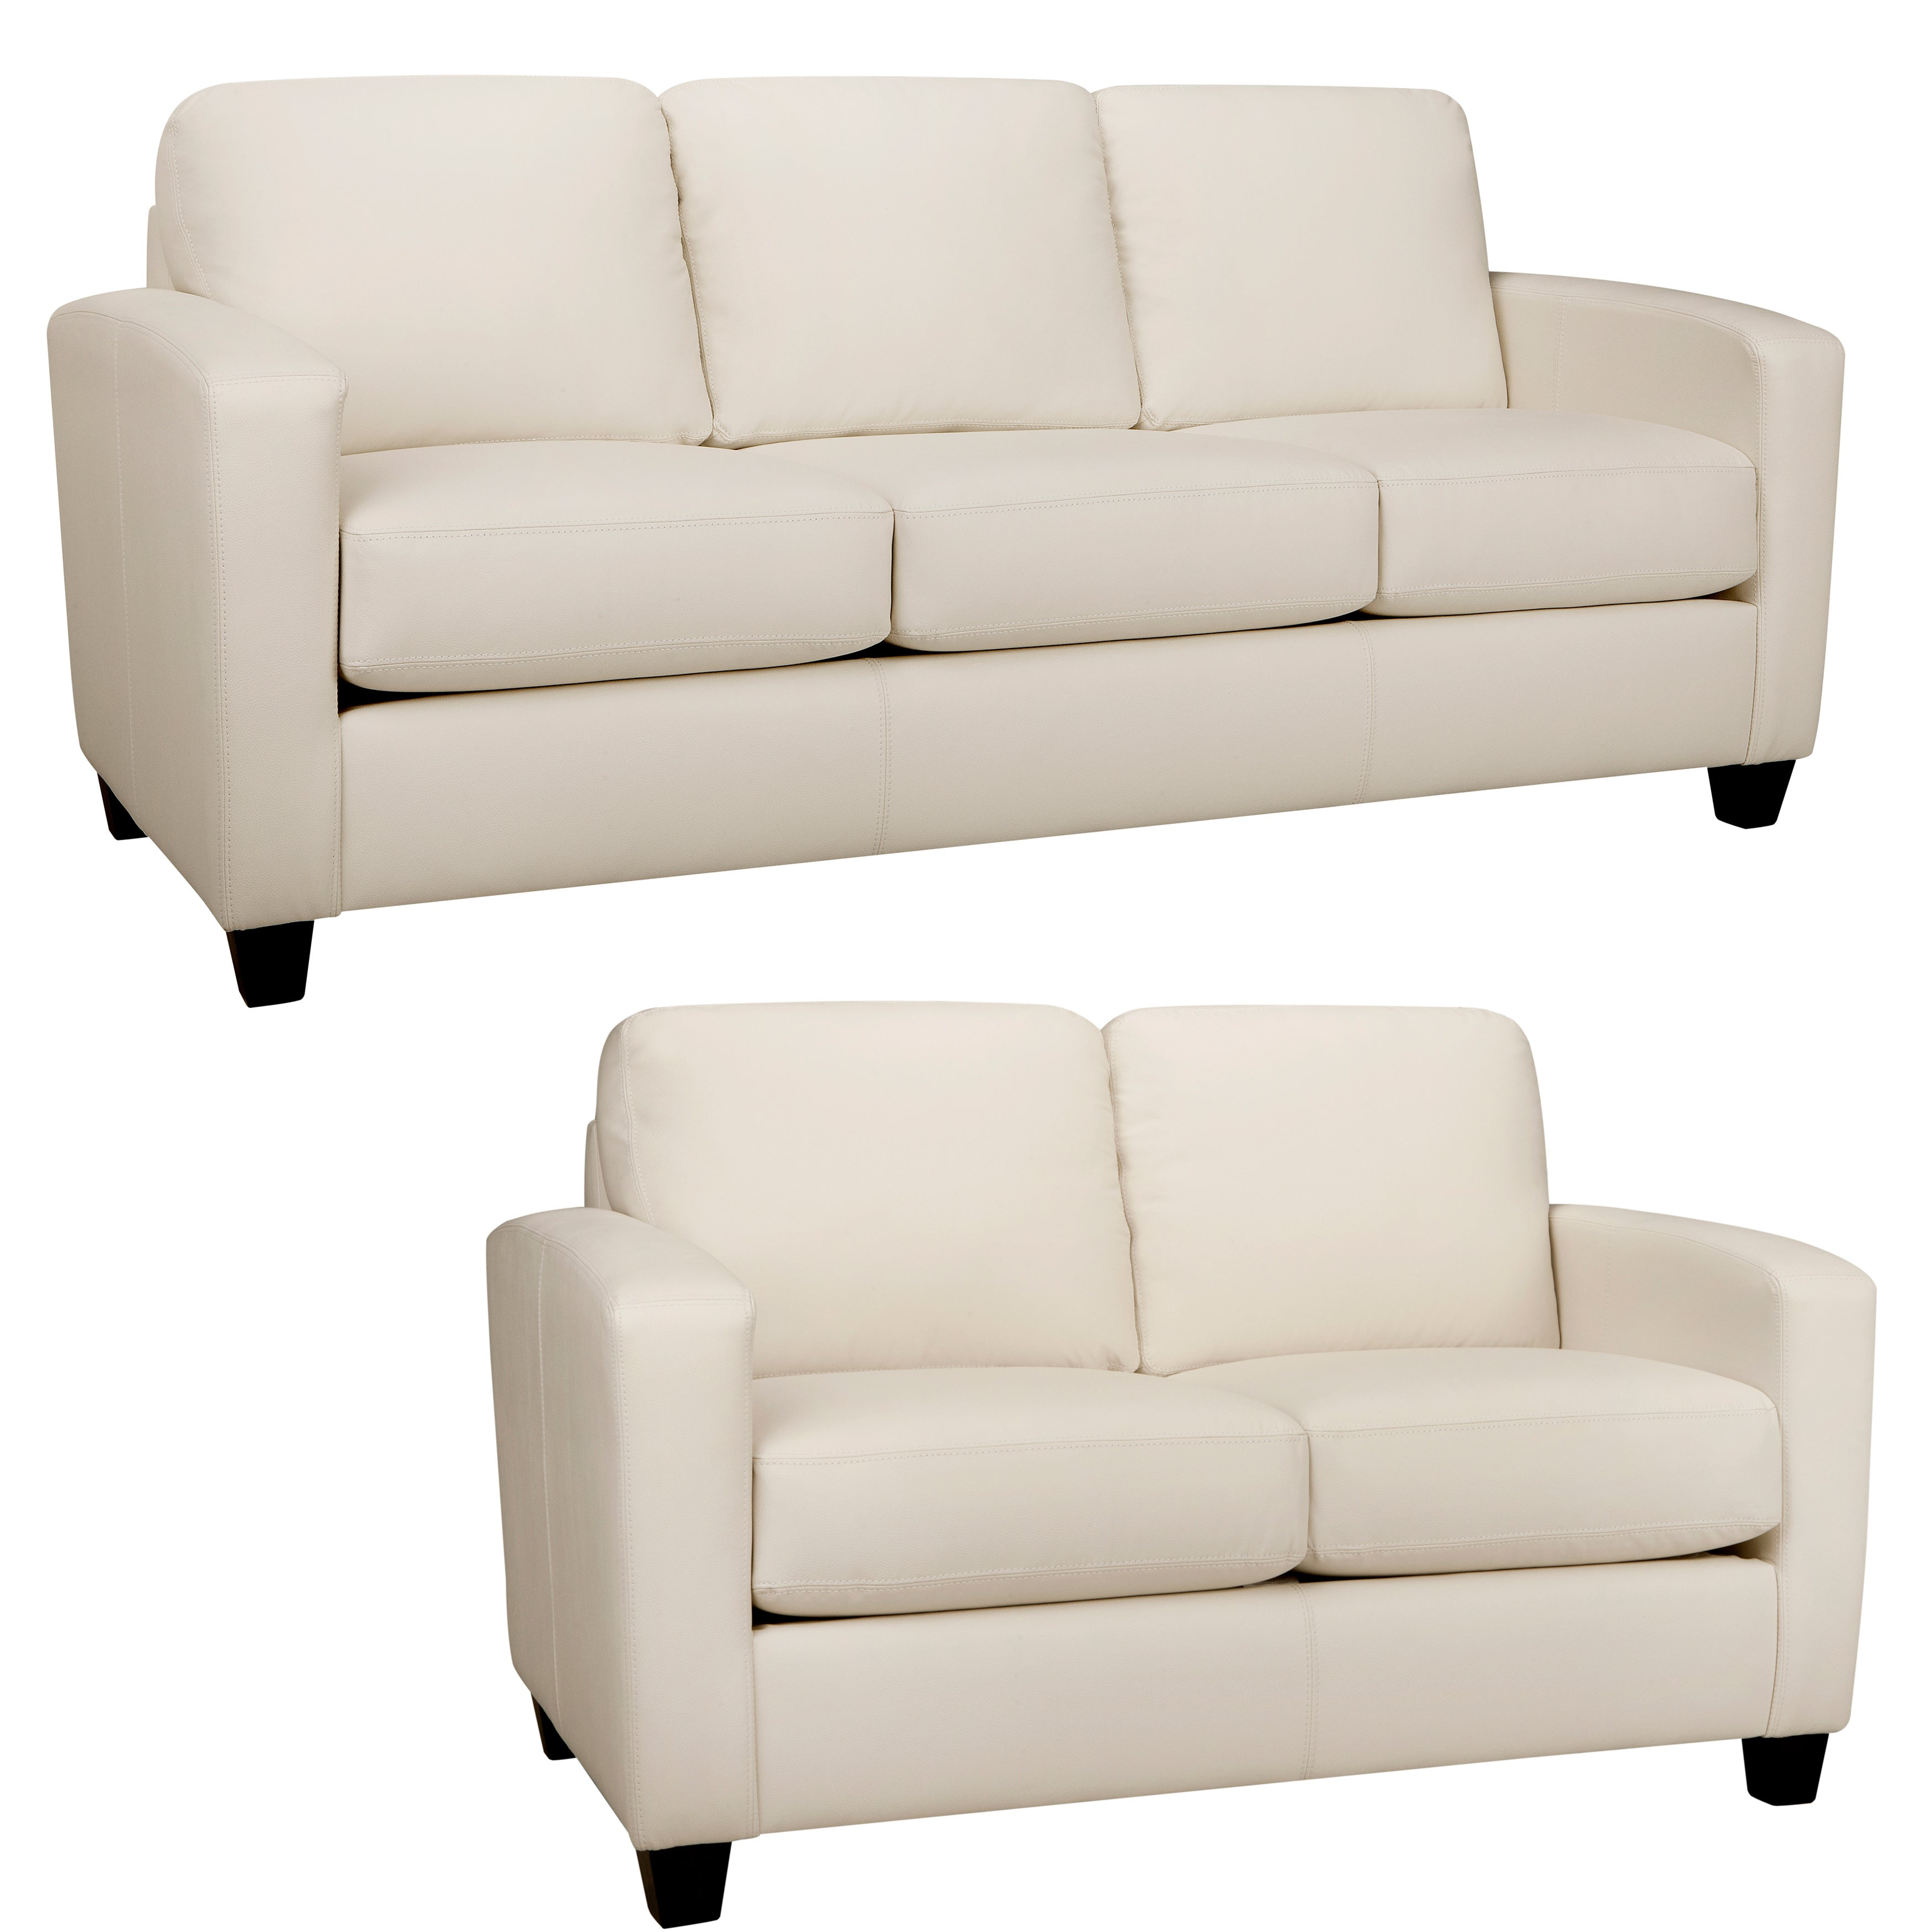 Bryce White Italian Leather Sofa And Loveseat Overstock Shopping Great Deals On Sofas